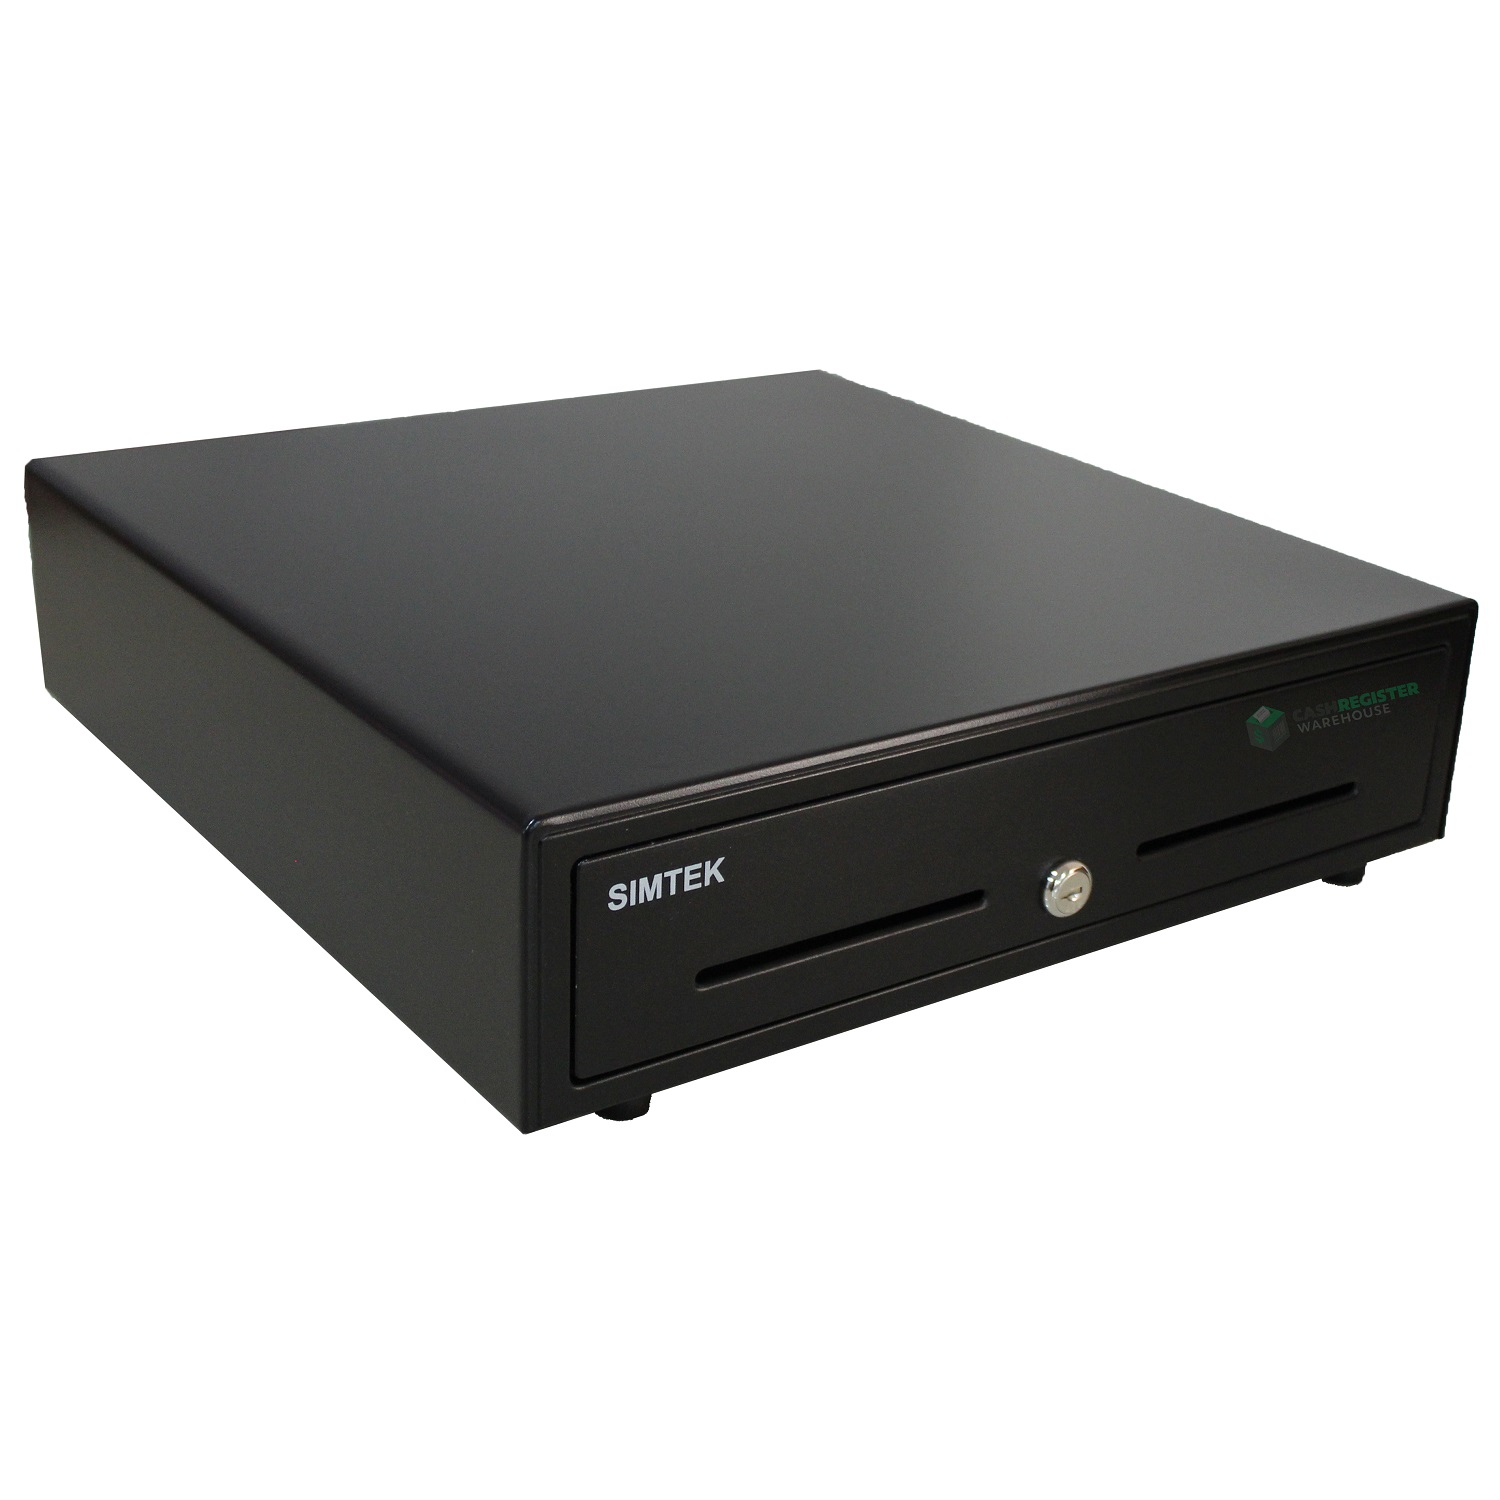 Simtek Sd-410 Cash Drawer Black